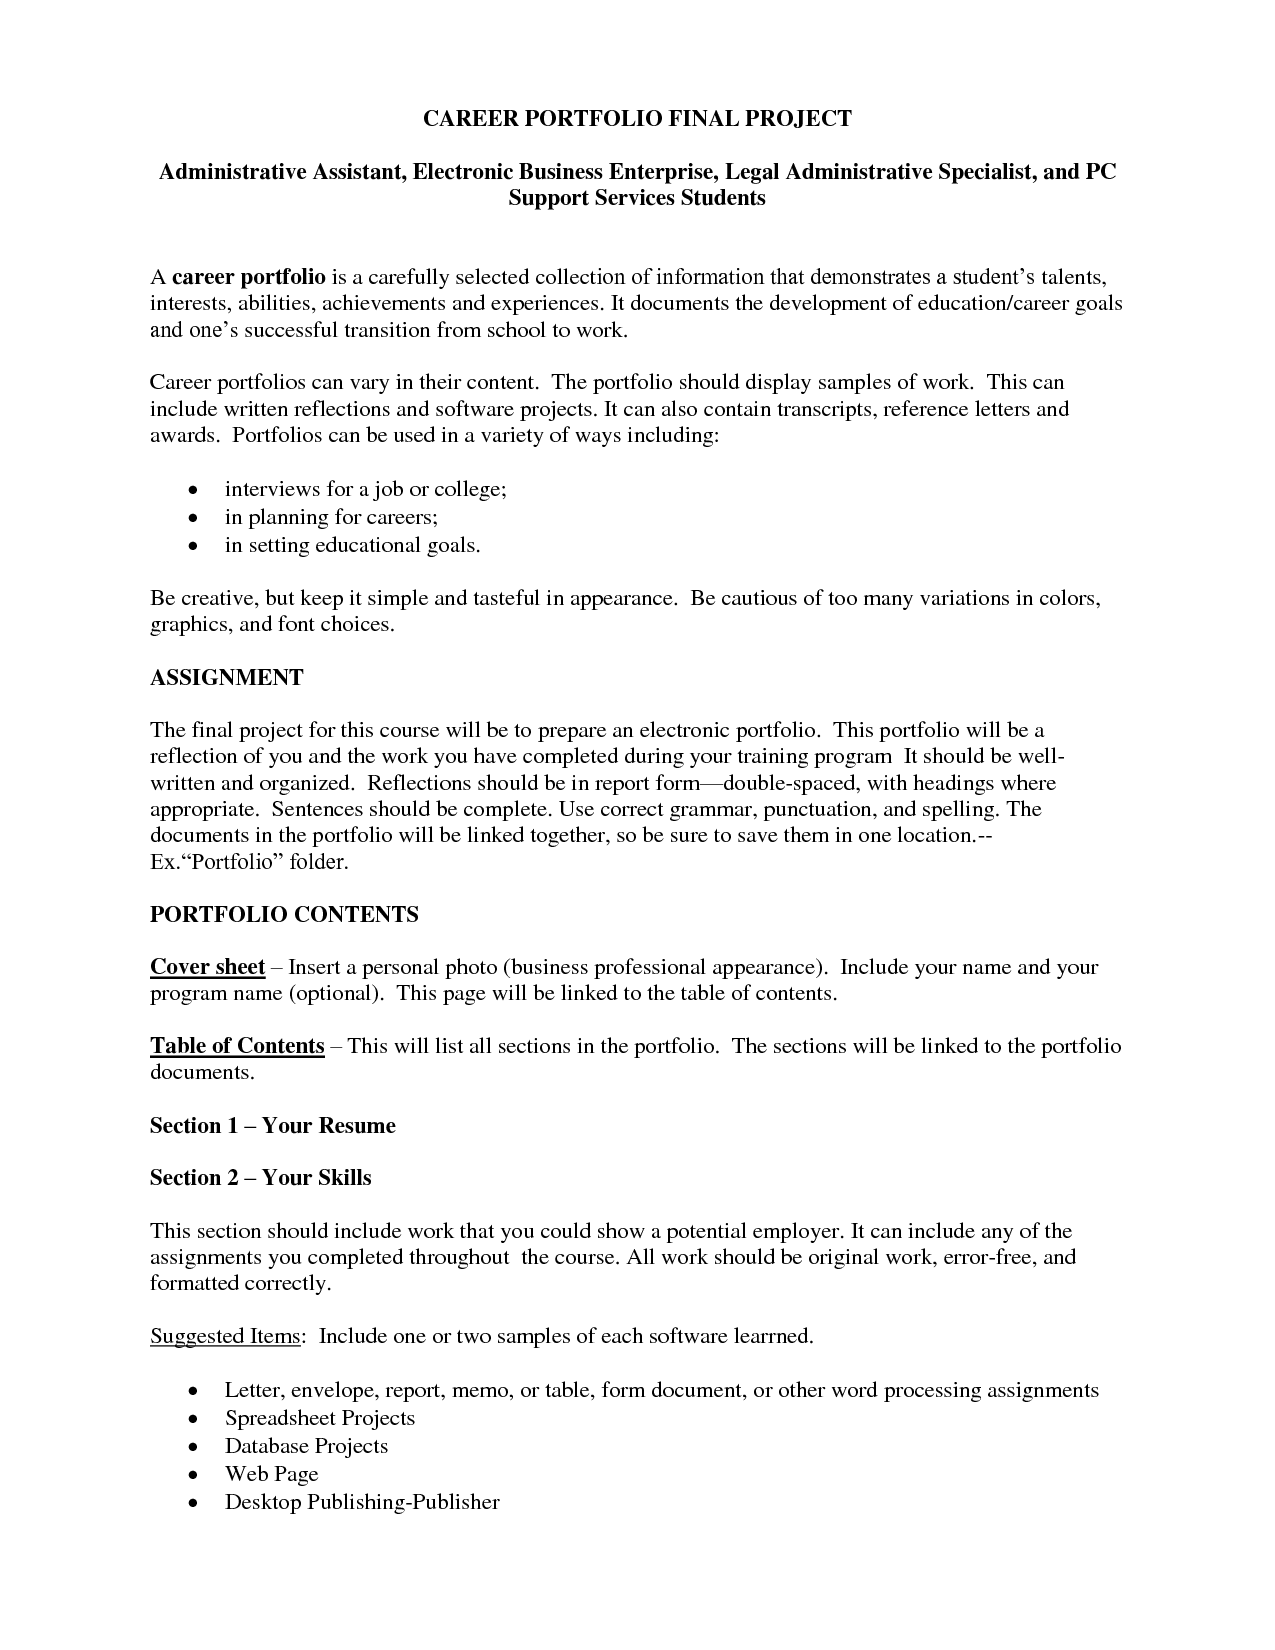 Websphere Administration Sample Resume Legal Administrative Resume Samples  Httpersumelegal